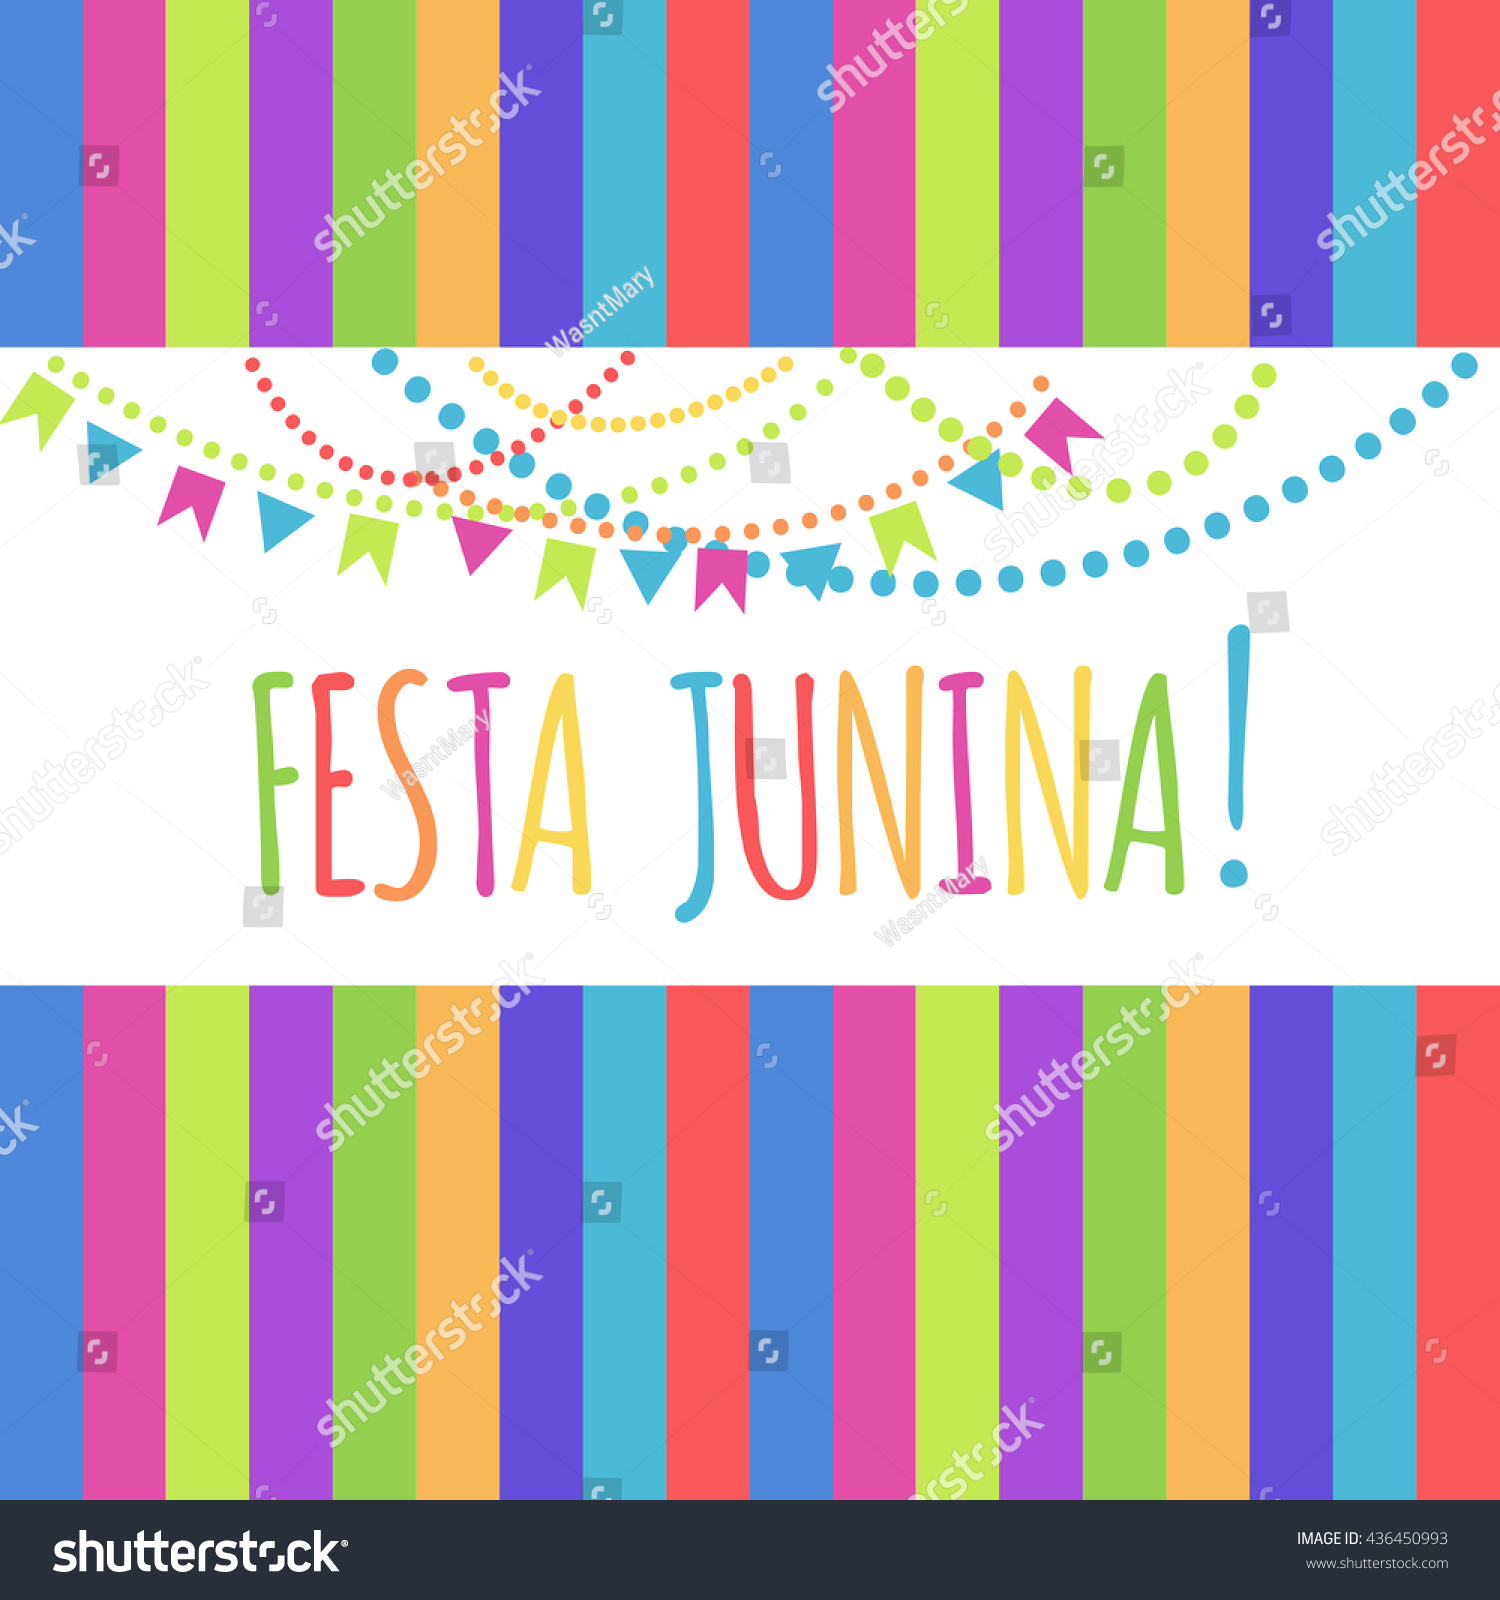 Latin America Holiday Festa Junina Colorful Stock Vector